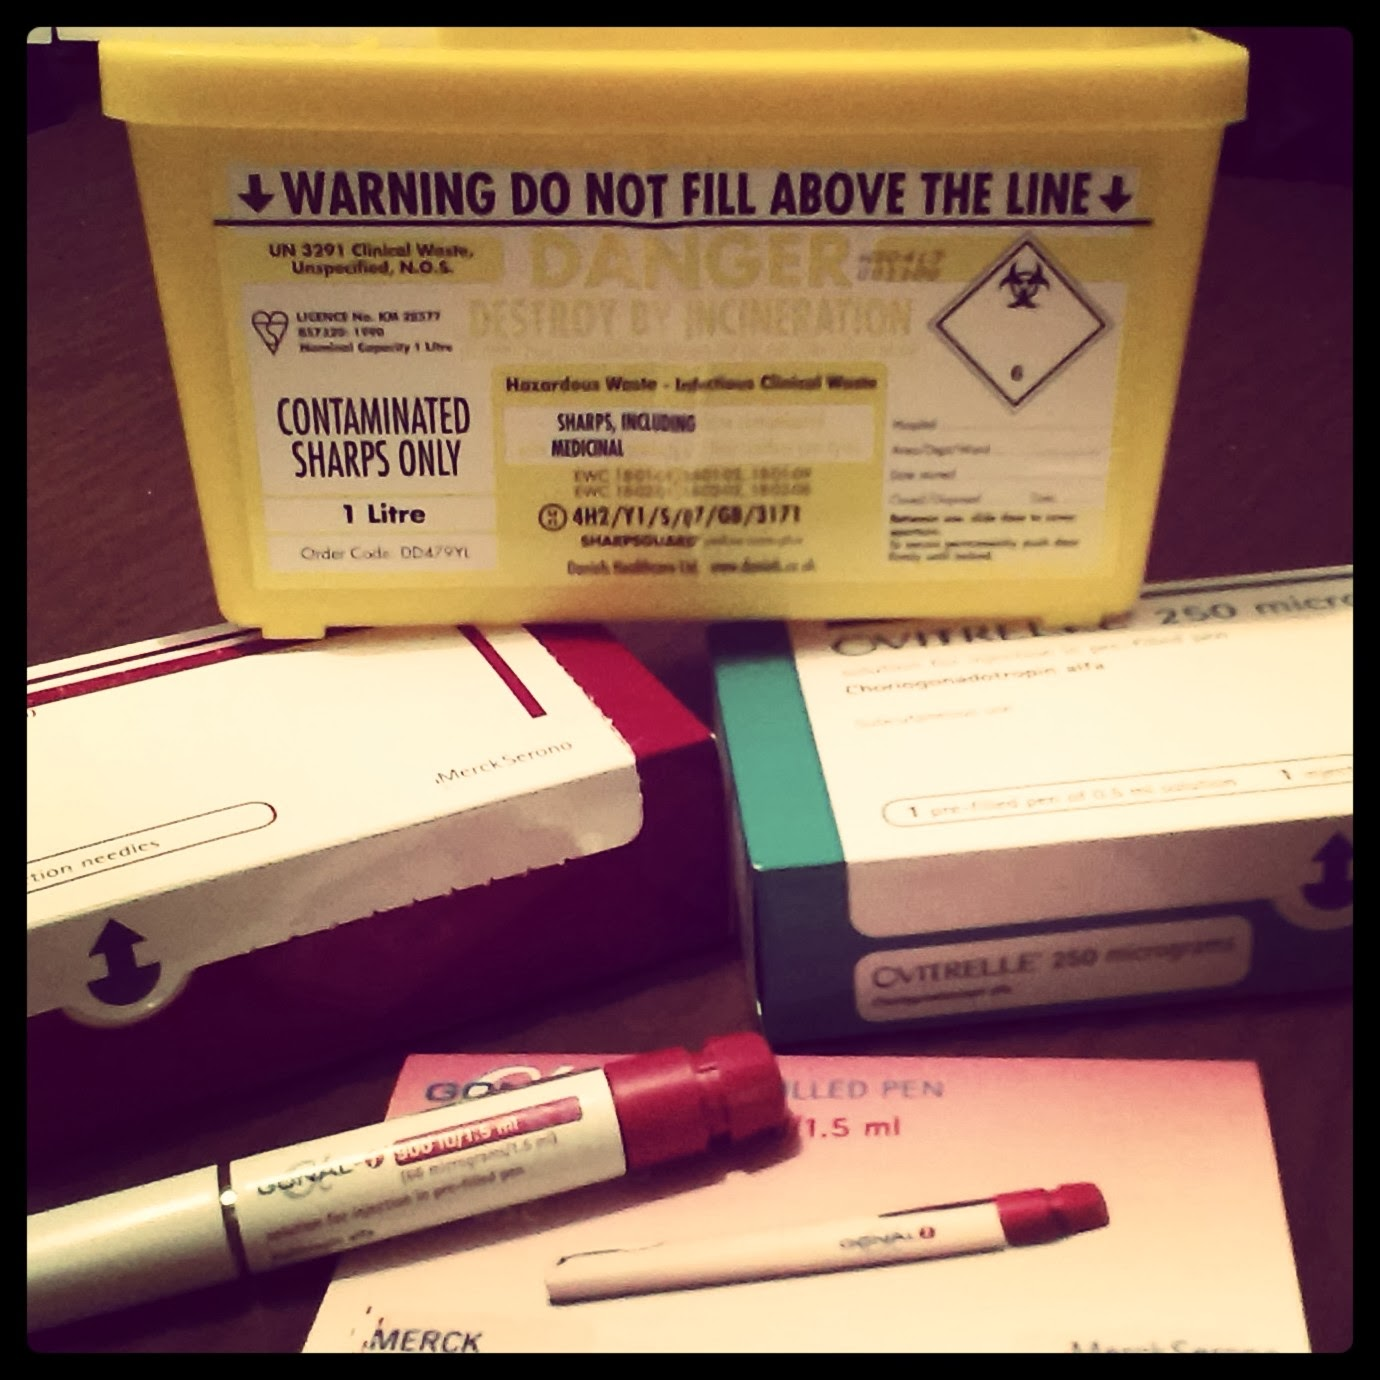 IVF Drugs and Sharps Box